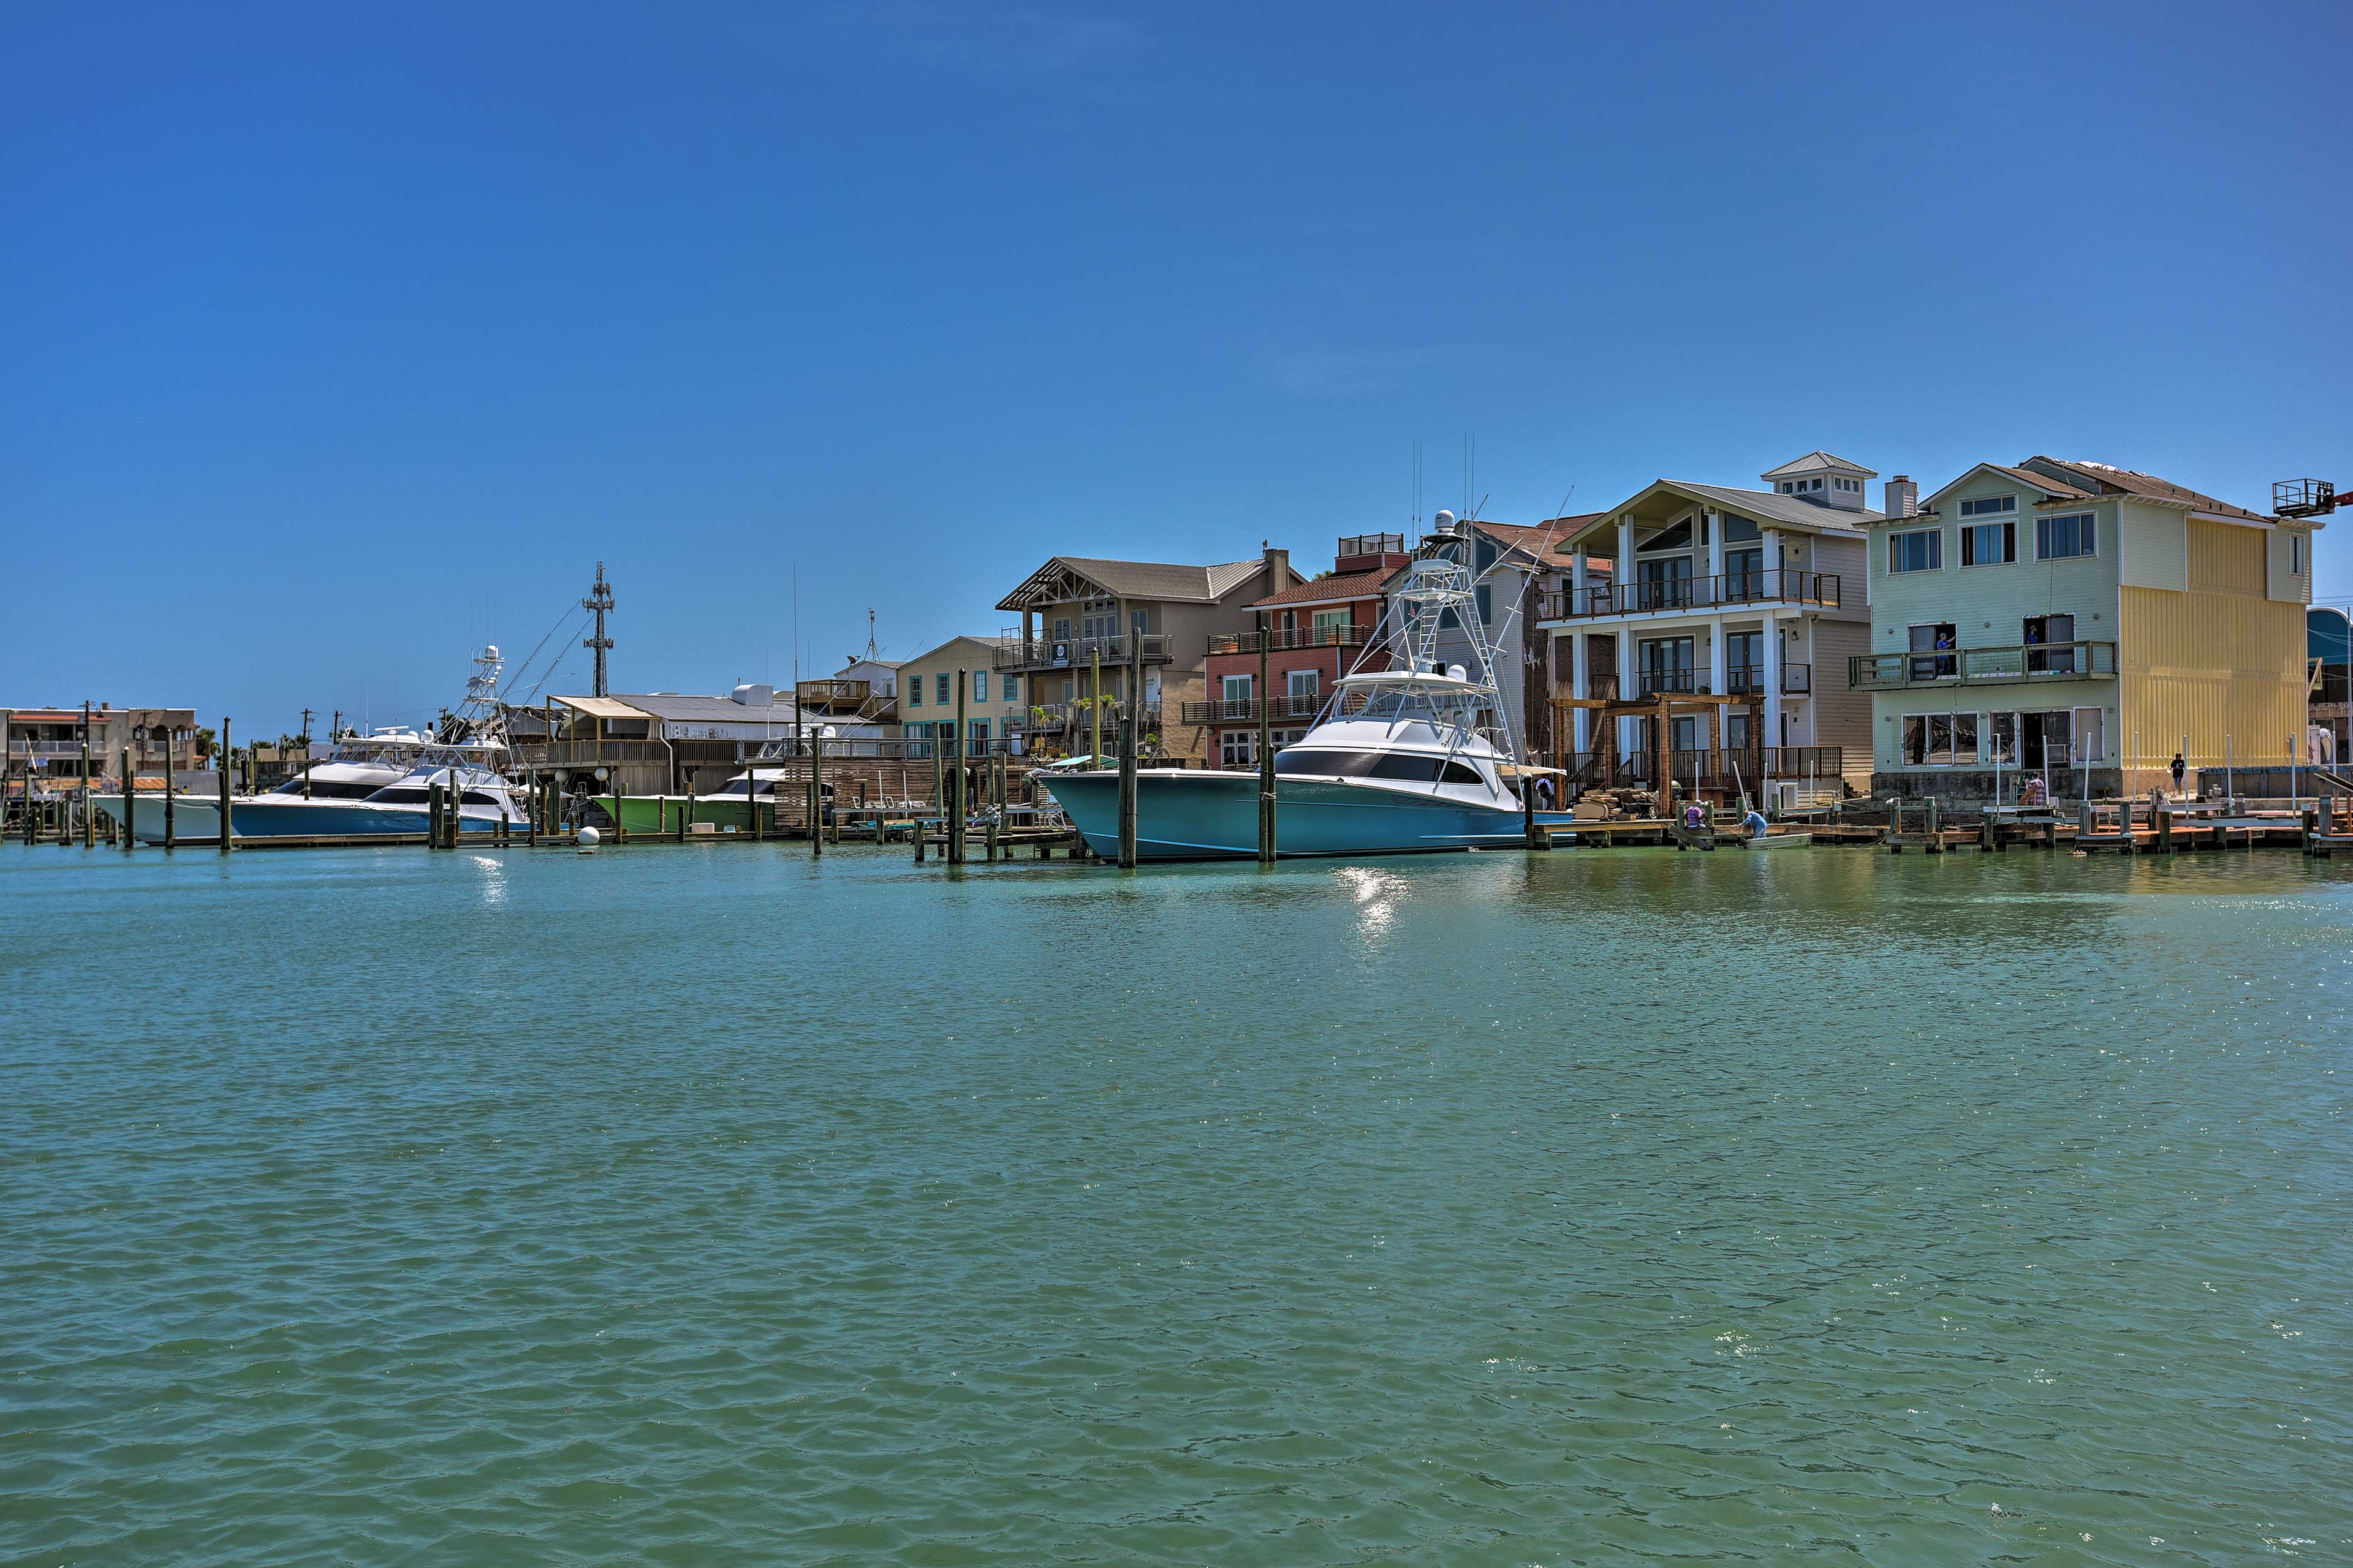 Port Aransas is home to beaches, restaurants, golf courses and more.